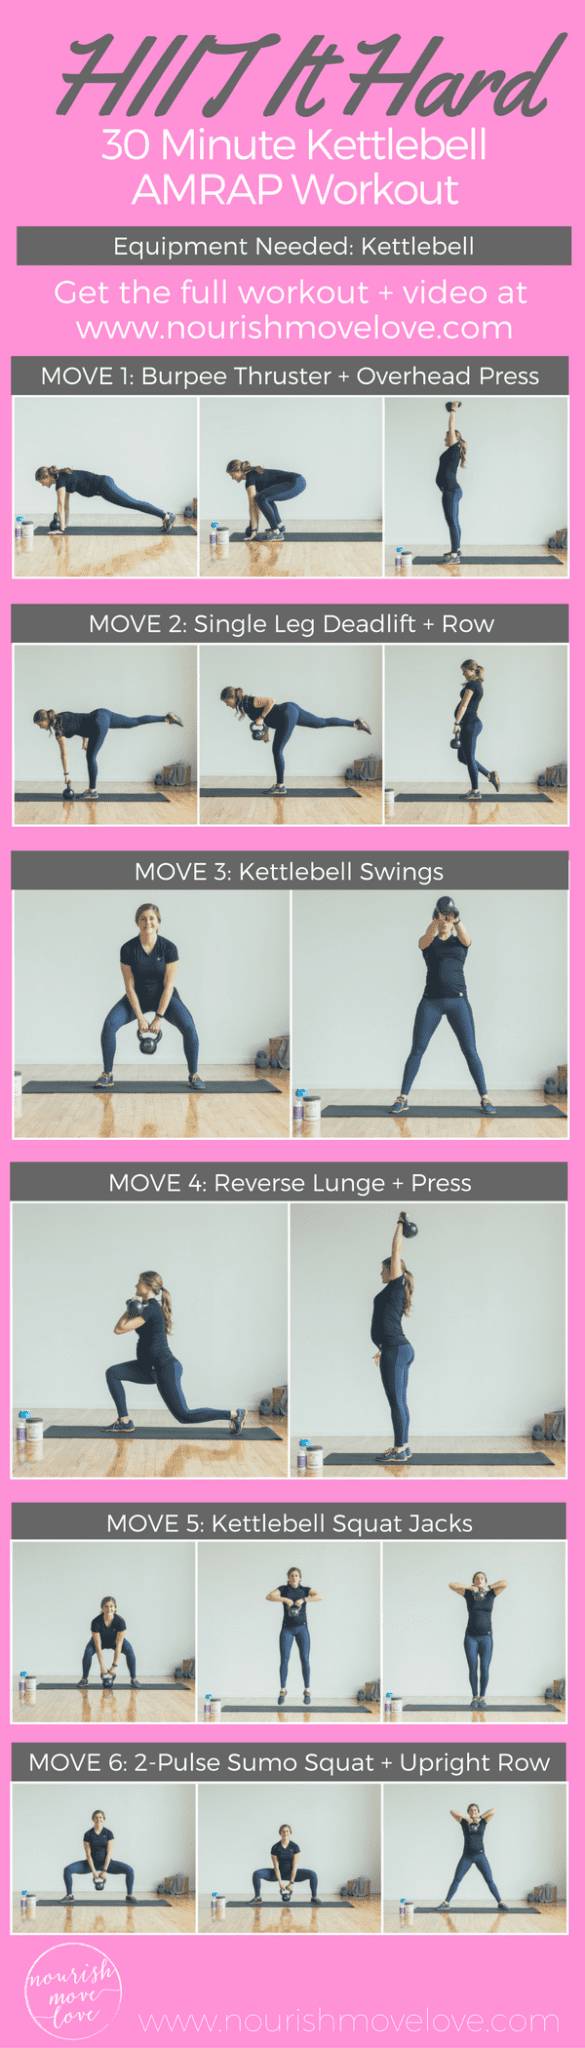 HIIT It Hard 30 Minute Kettlebell AMRAP Workout